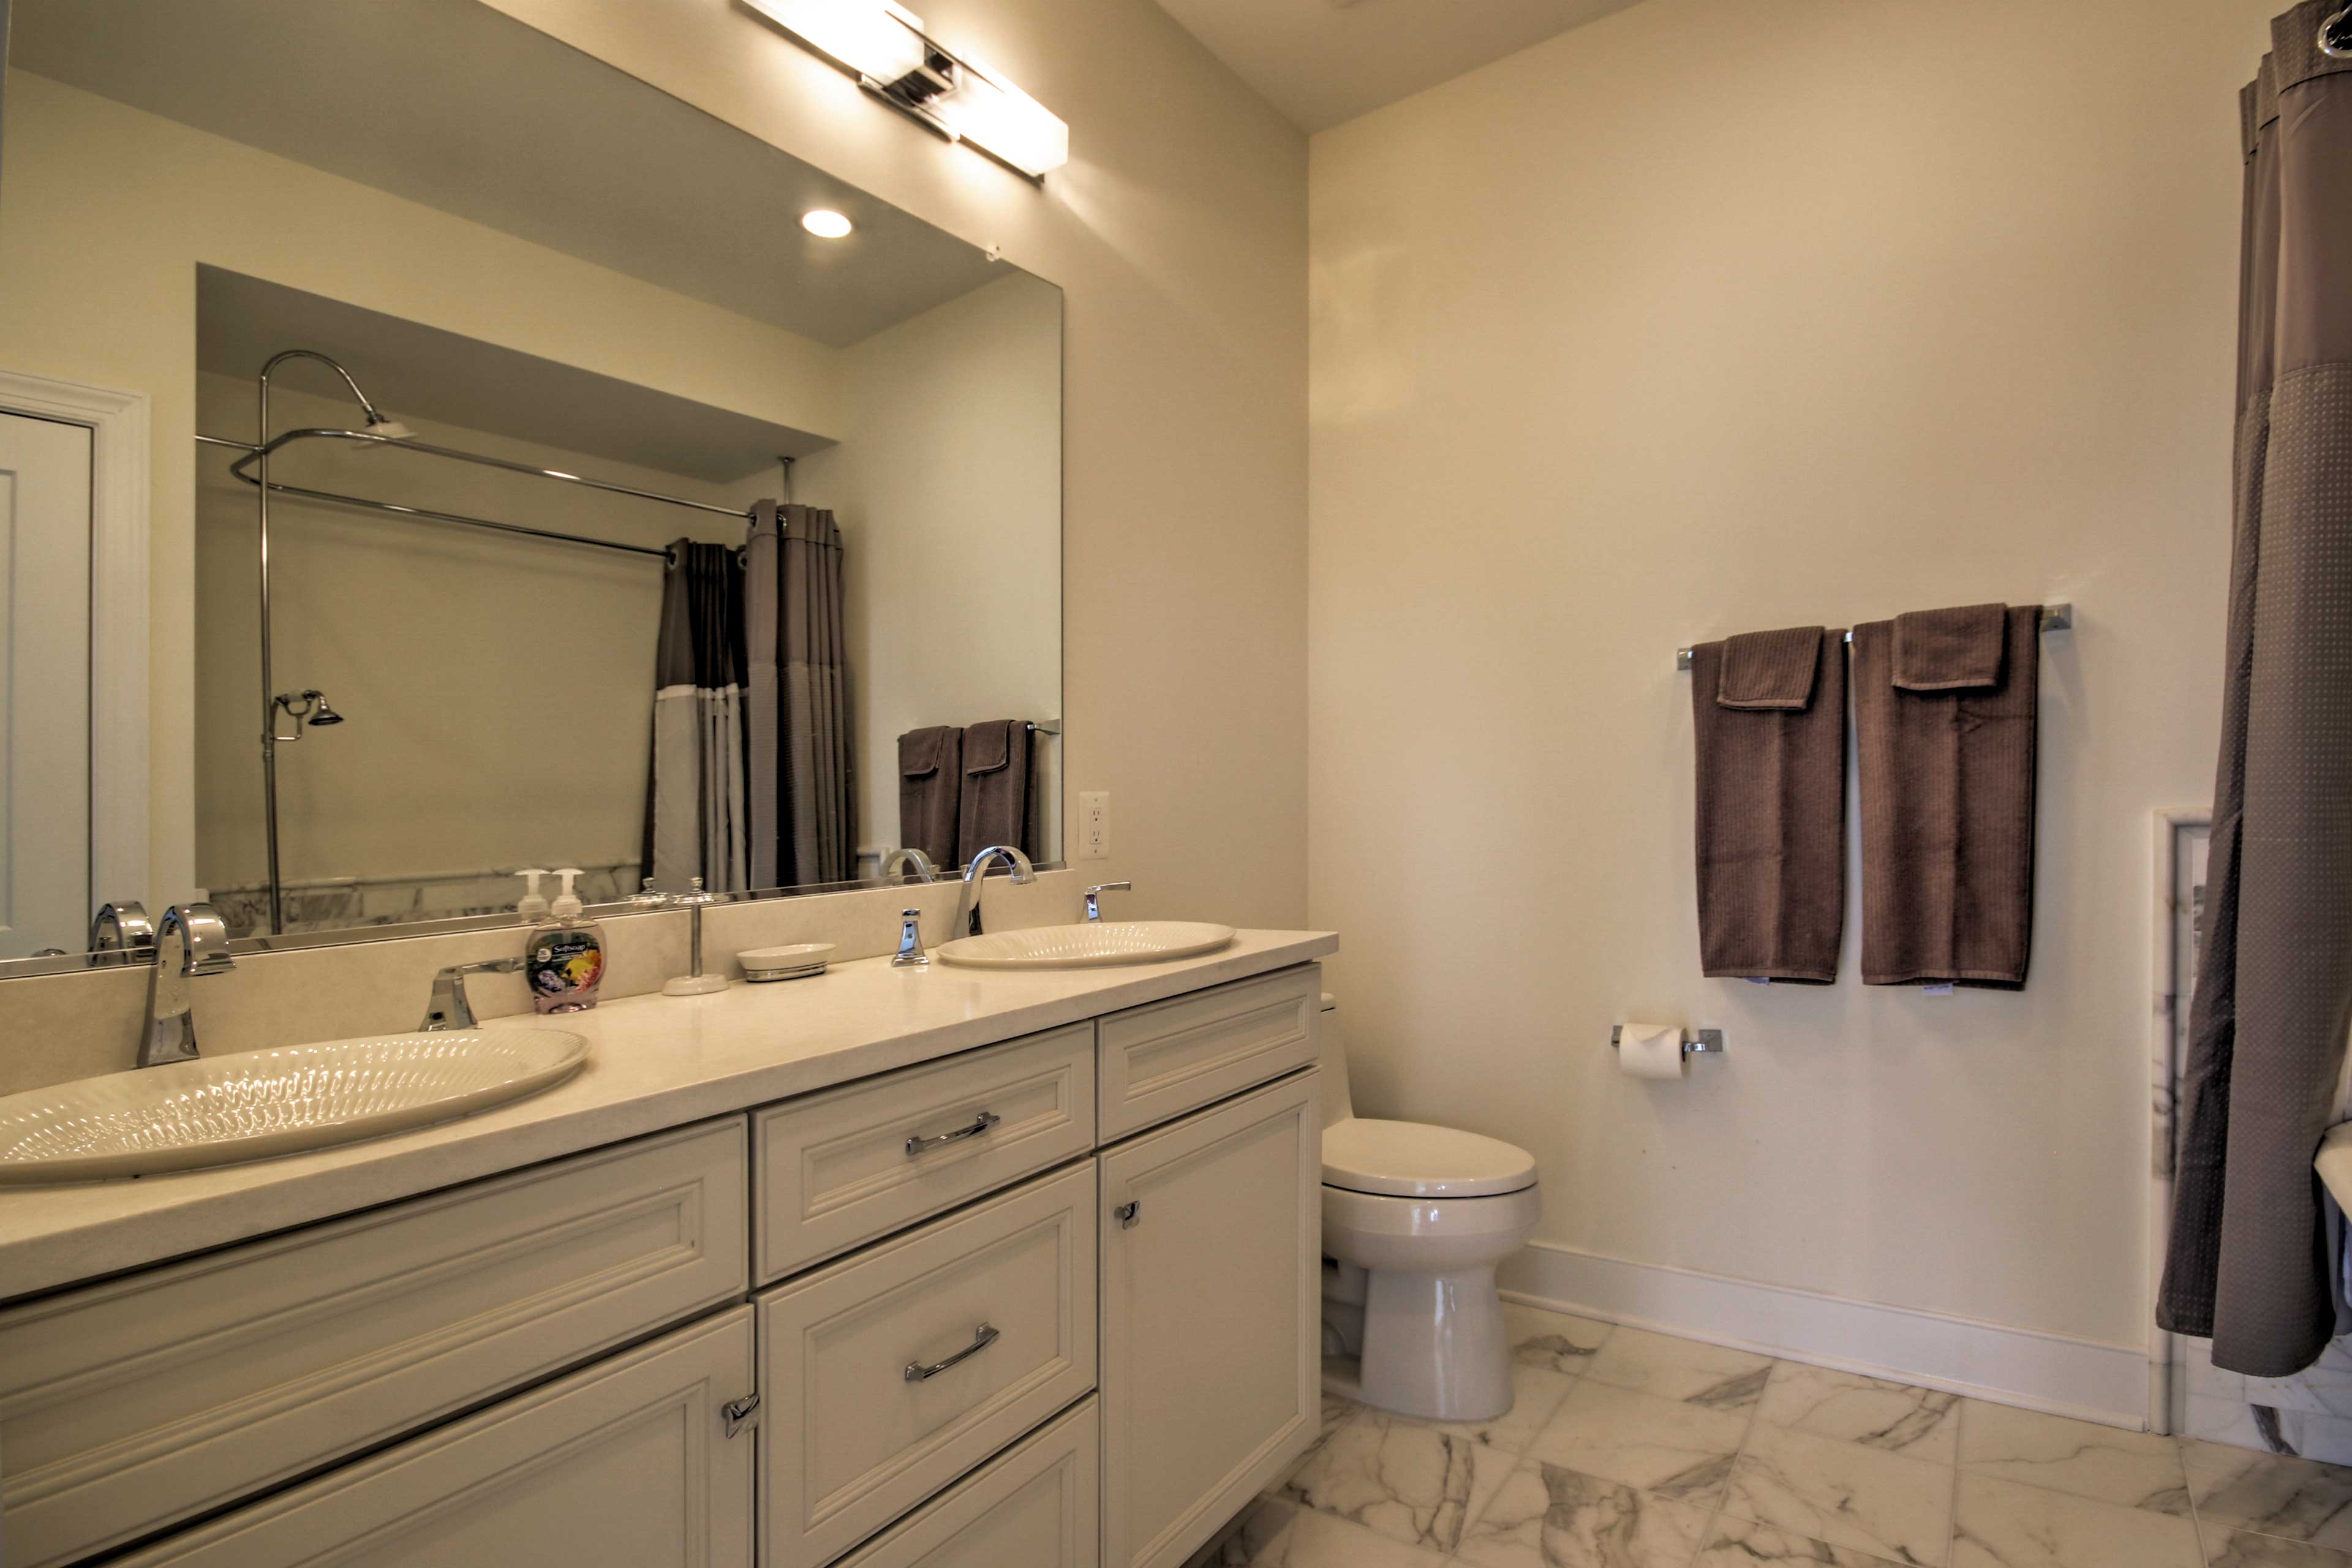 His and her sinks provide plenty of space in the master en-suite bathroom.